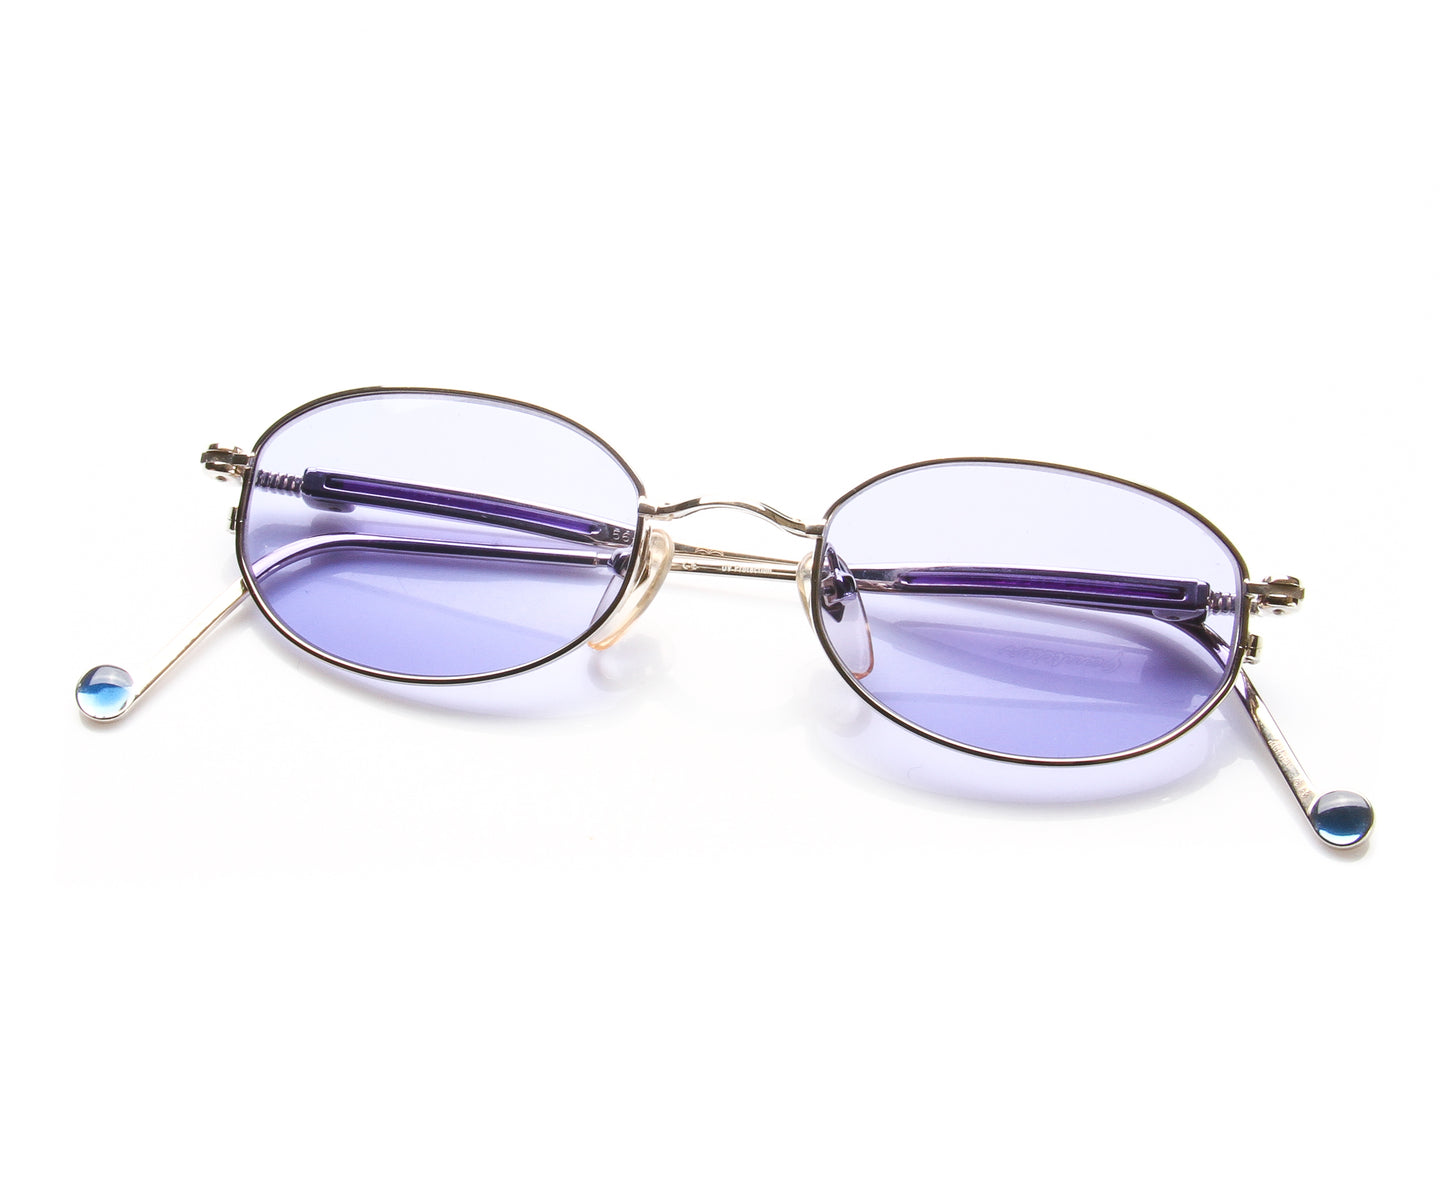 Jean Paul Gaultier 56 8103 2, Jean Paul Gaultier , glasses frames, eyeglasses online, eyeglass frames, mens glasses, womens glasses, buy glasses online, designer eyeglasses, vintage sunglasses, retro sunglasses, vintage glasses, sunglass, eyeglass, glasses, lens, vintage frames company, vf